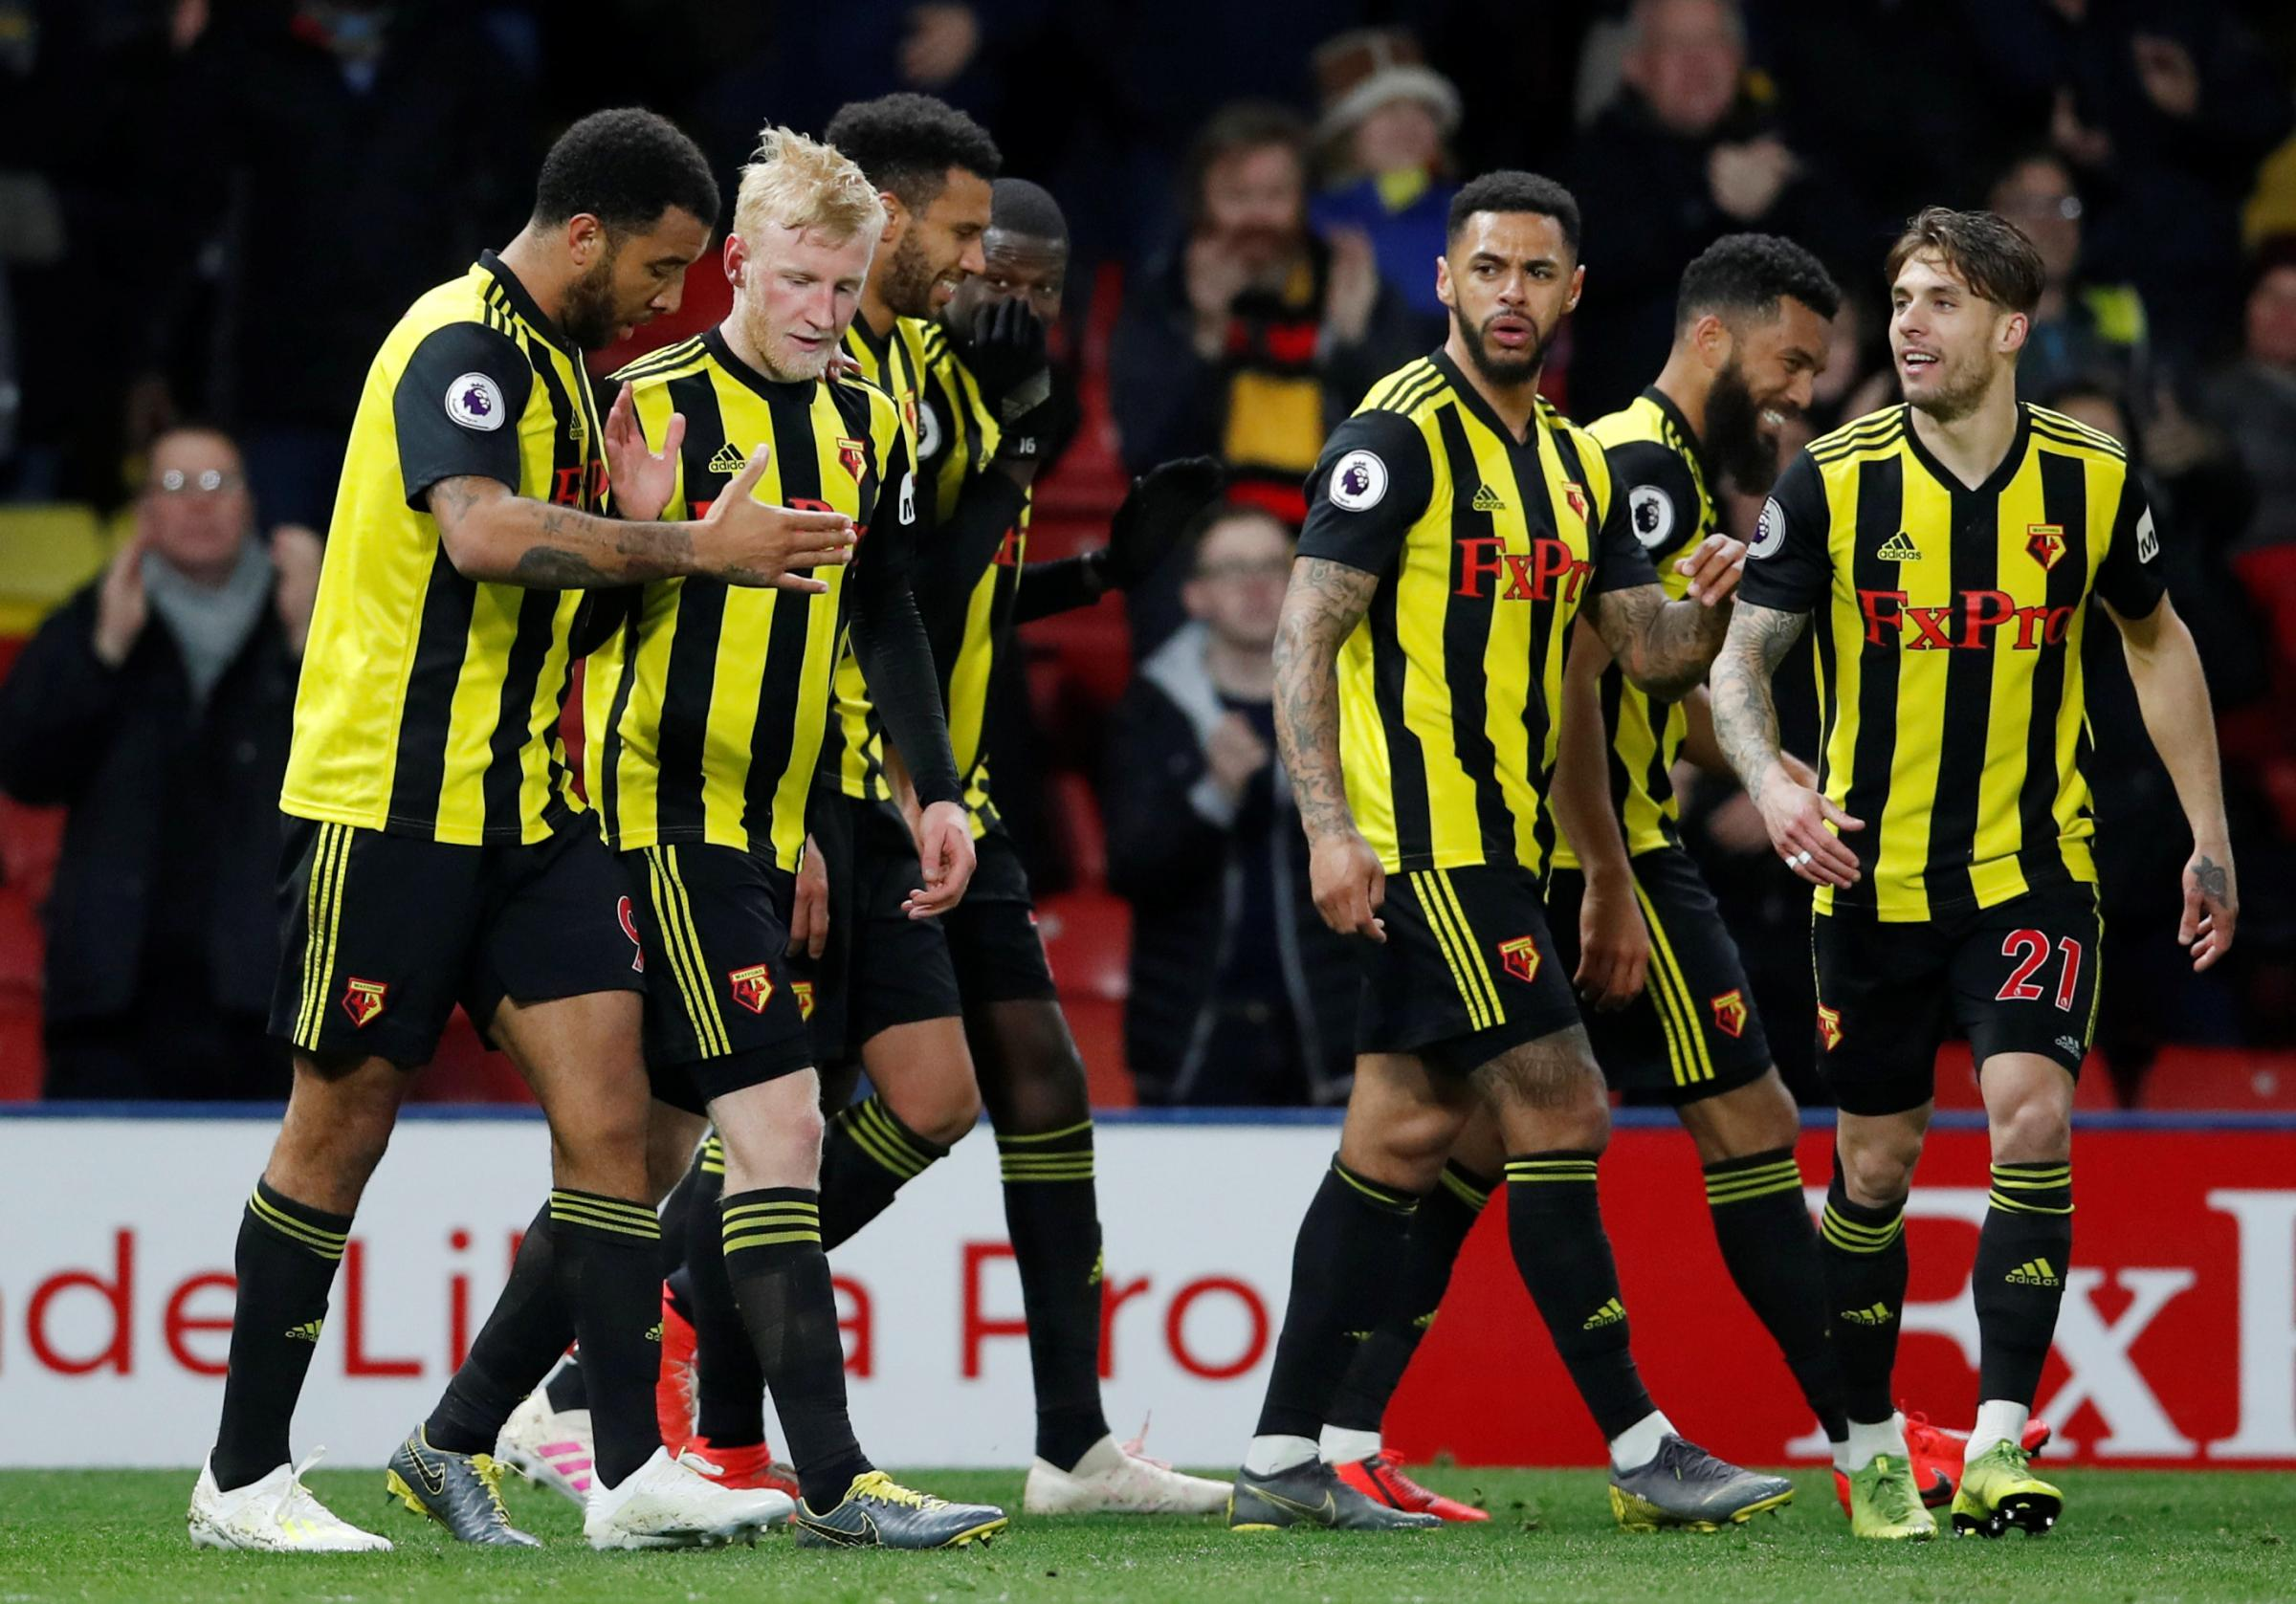 RATINGS: Watford reach Premier League points record